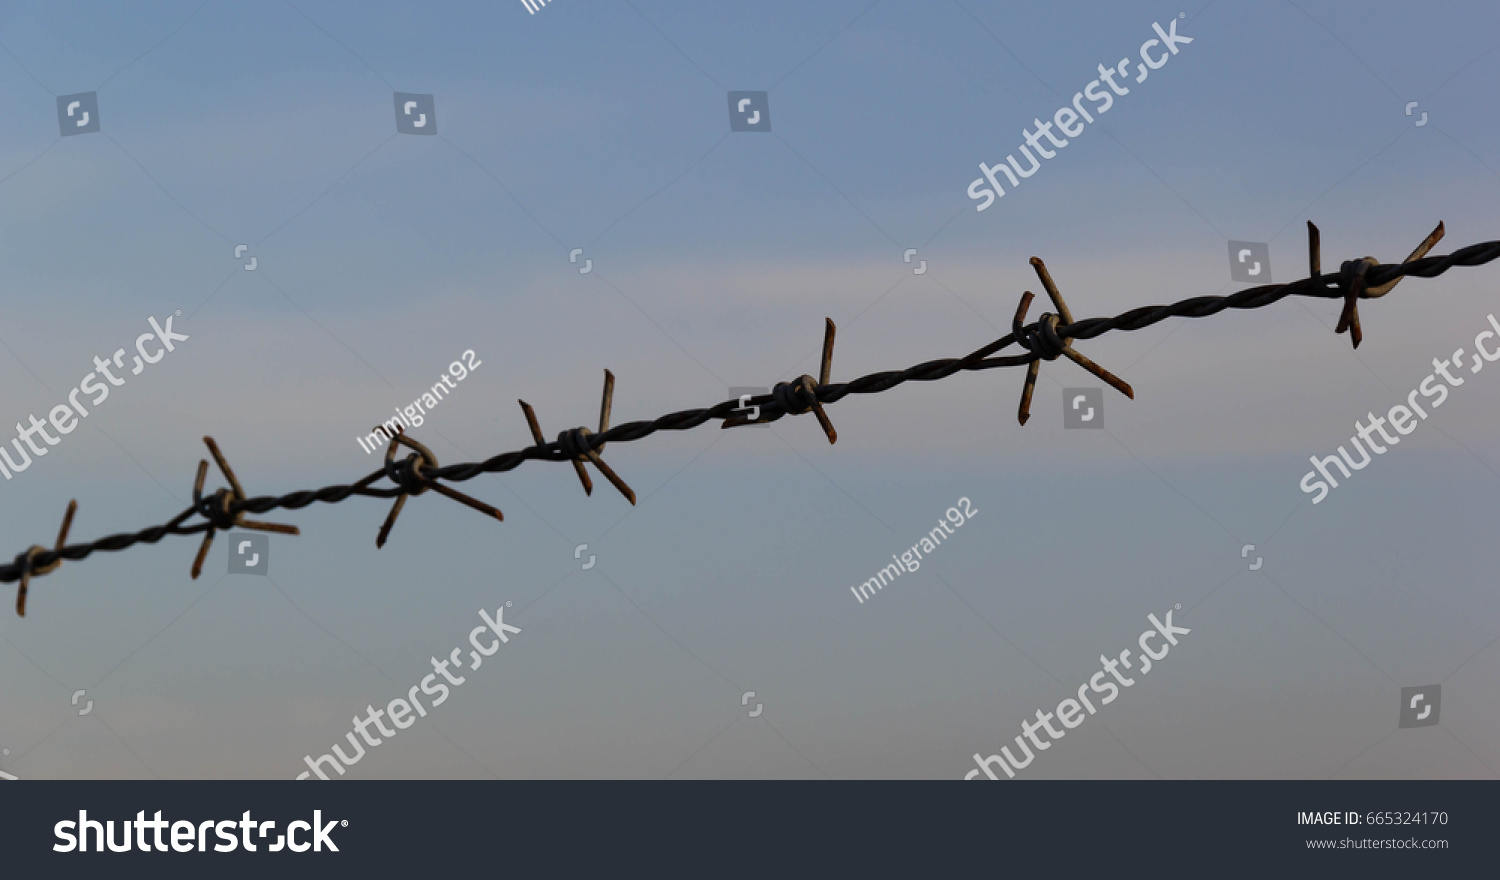 Rusty Barbed Wire Sky Background Stock Photo (Royalty Free ...